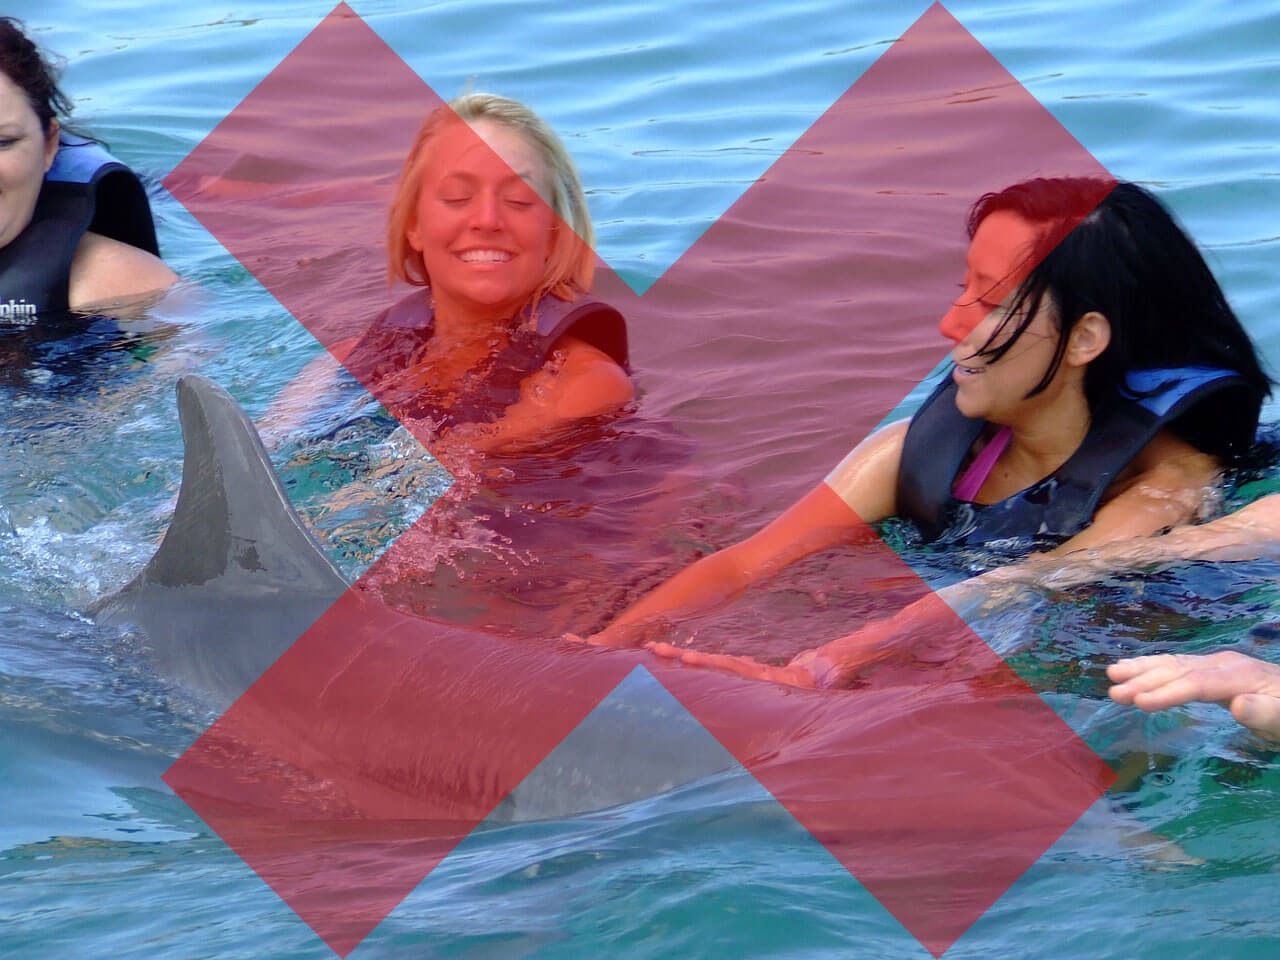 swimming with dolphins is cruel save animals peta kids